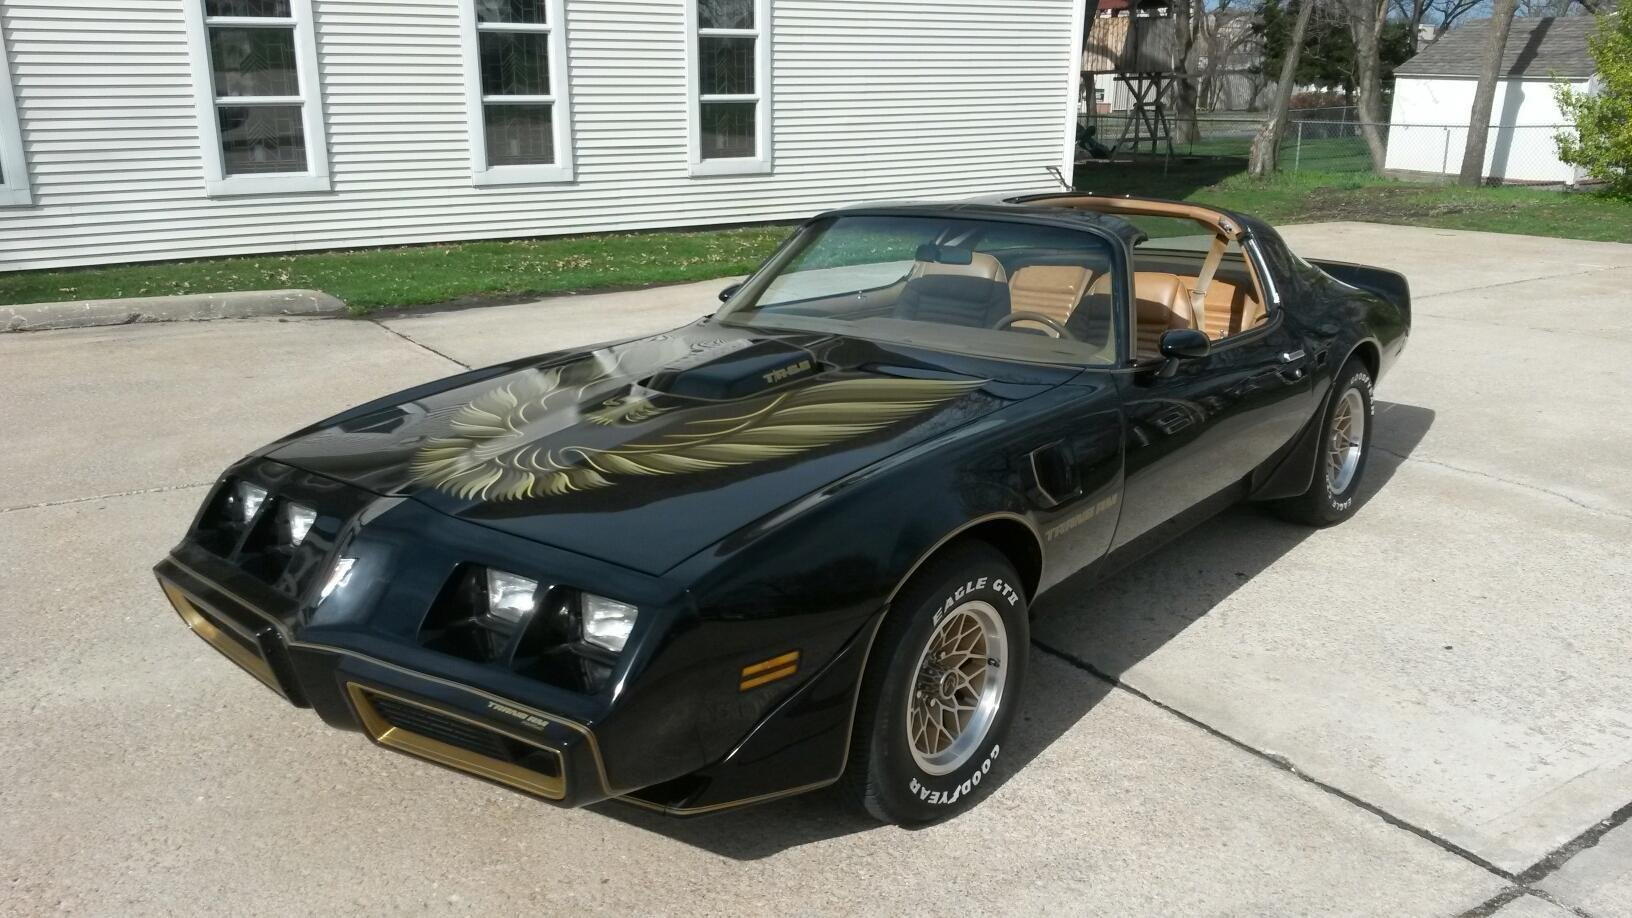 1979 Trans Am Picture 1979 Pontiac Trans Am Restore A Muscle Car Llc